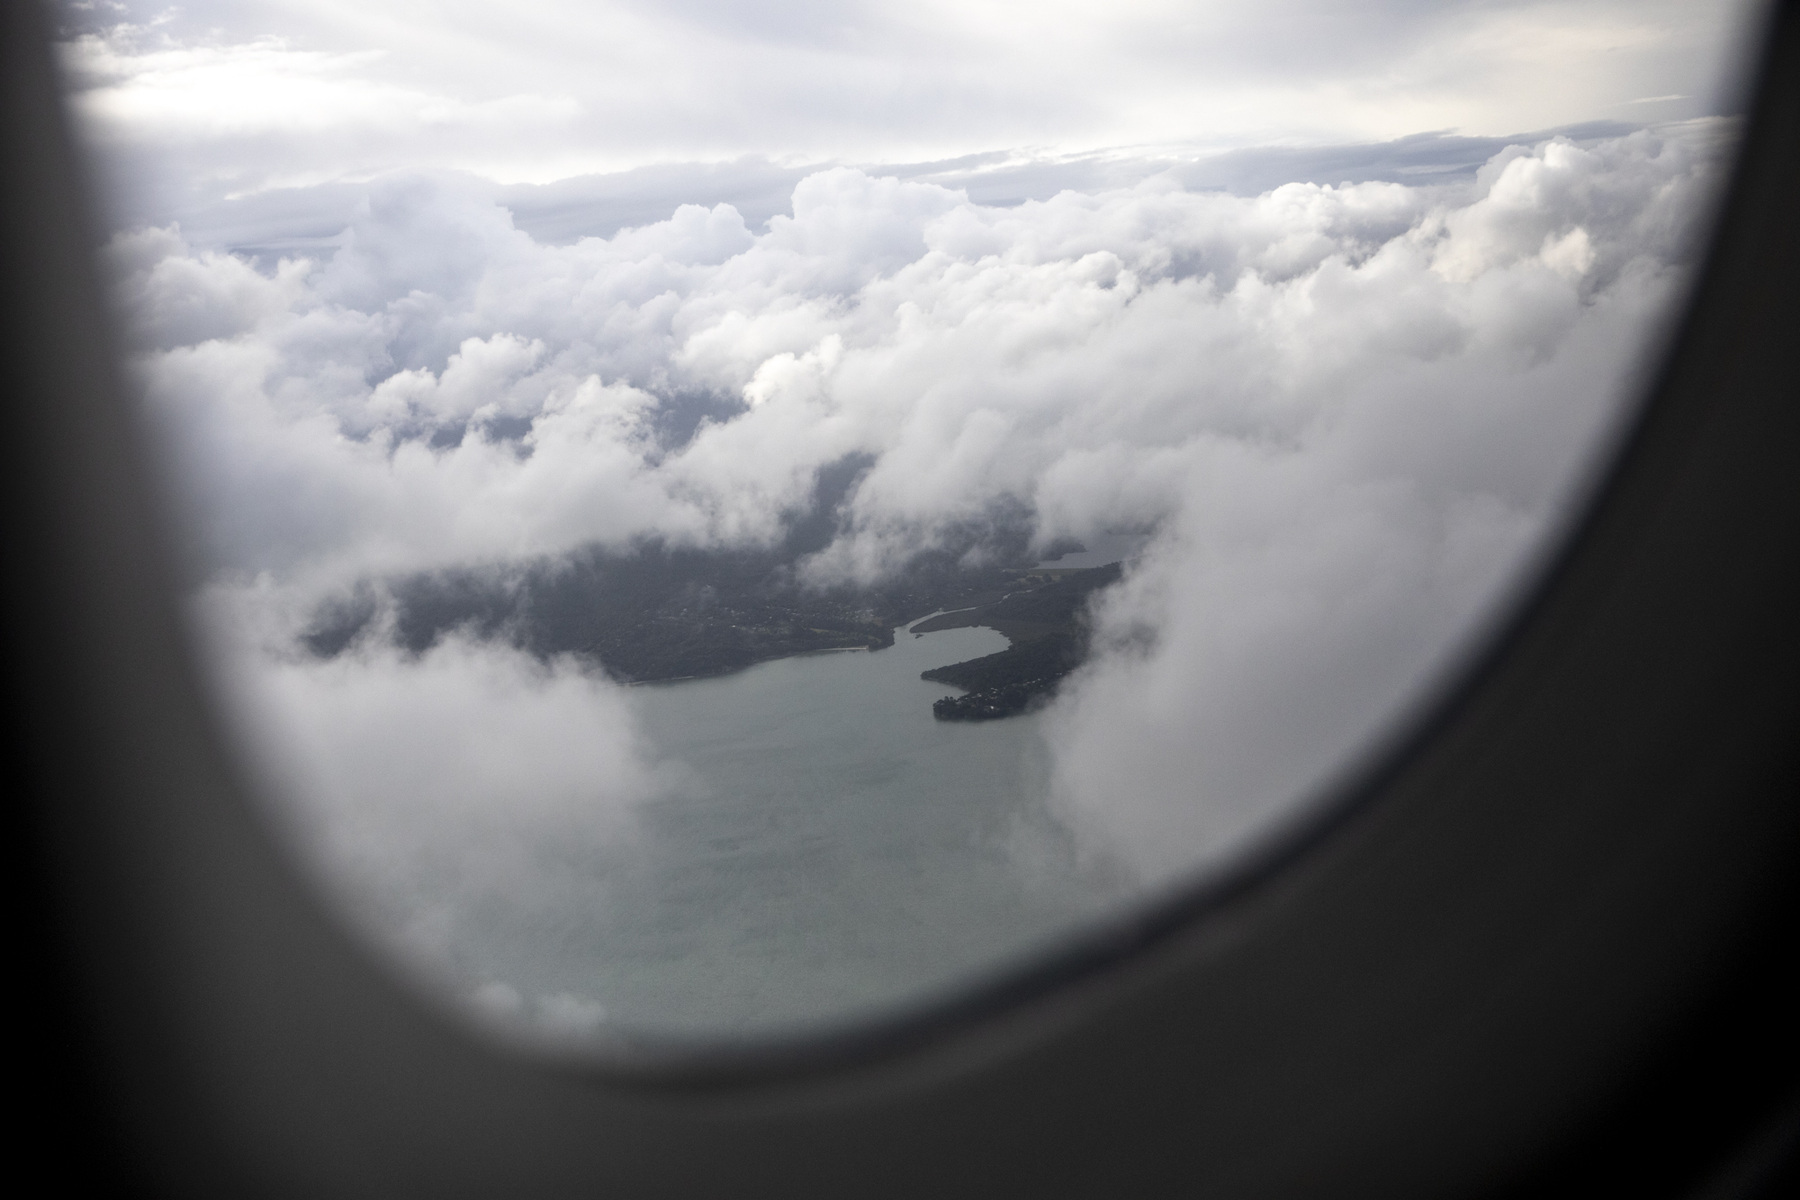 Adrienne Surprenant - 19/12/2018, Auckland, New Zealand — View of New Zealand from the plane leaving to Samoa.